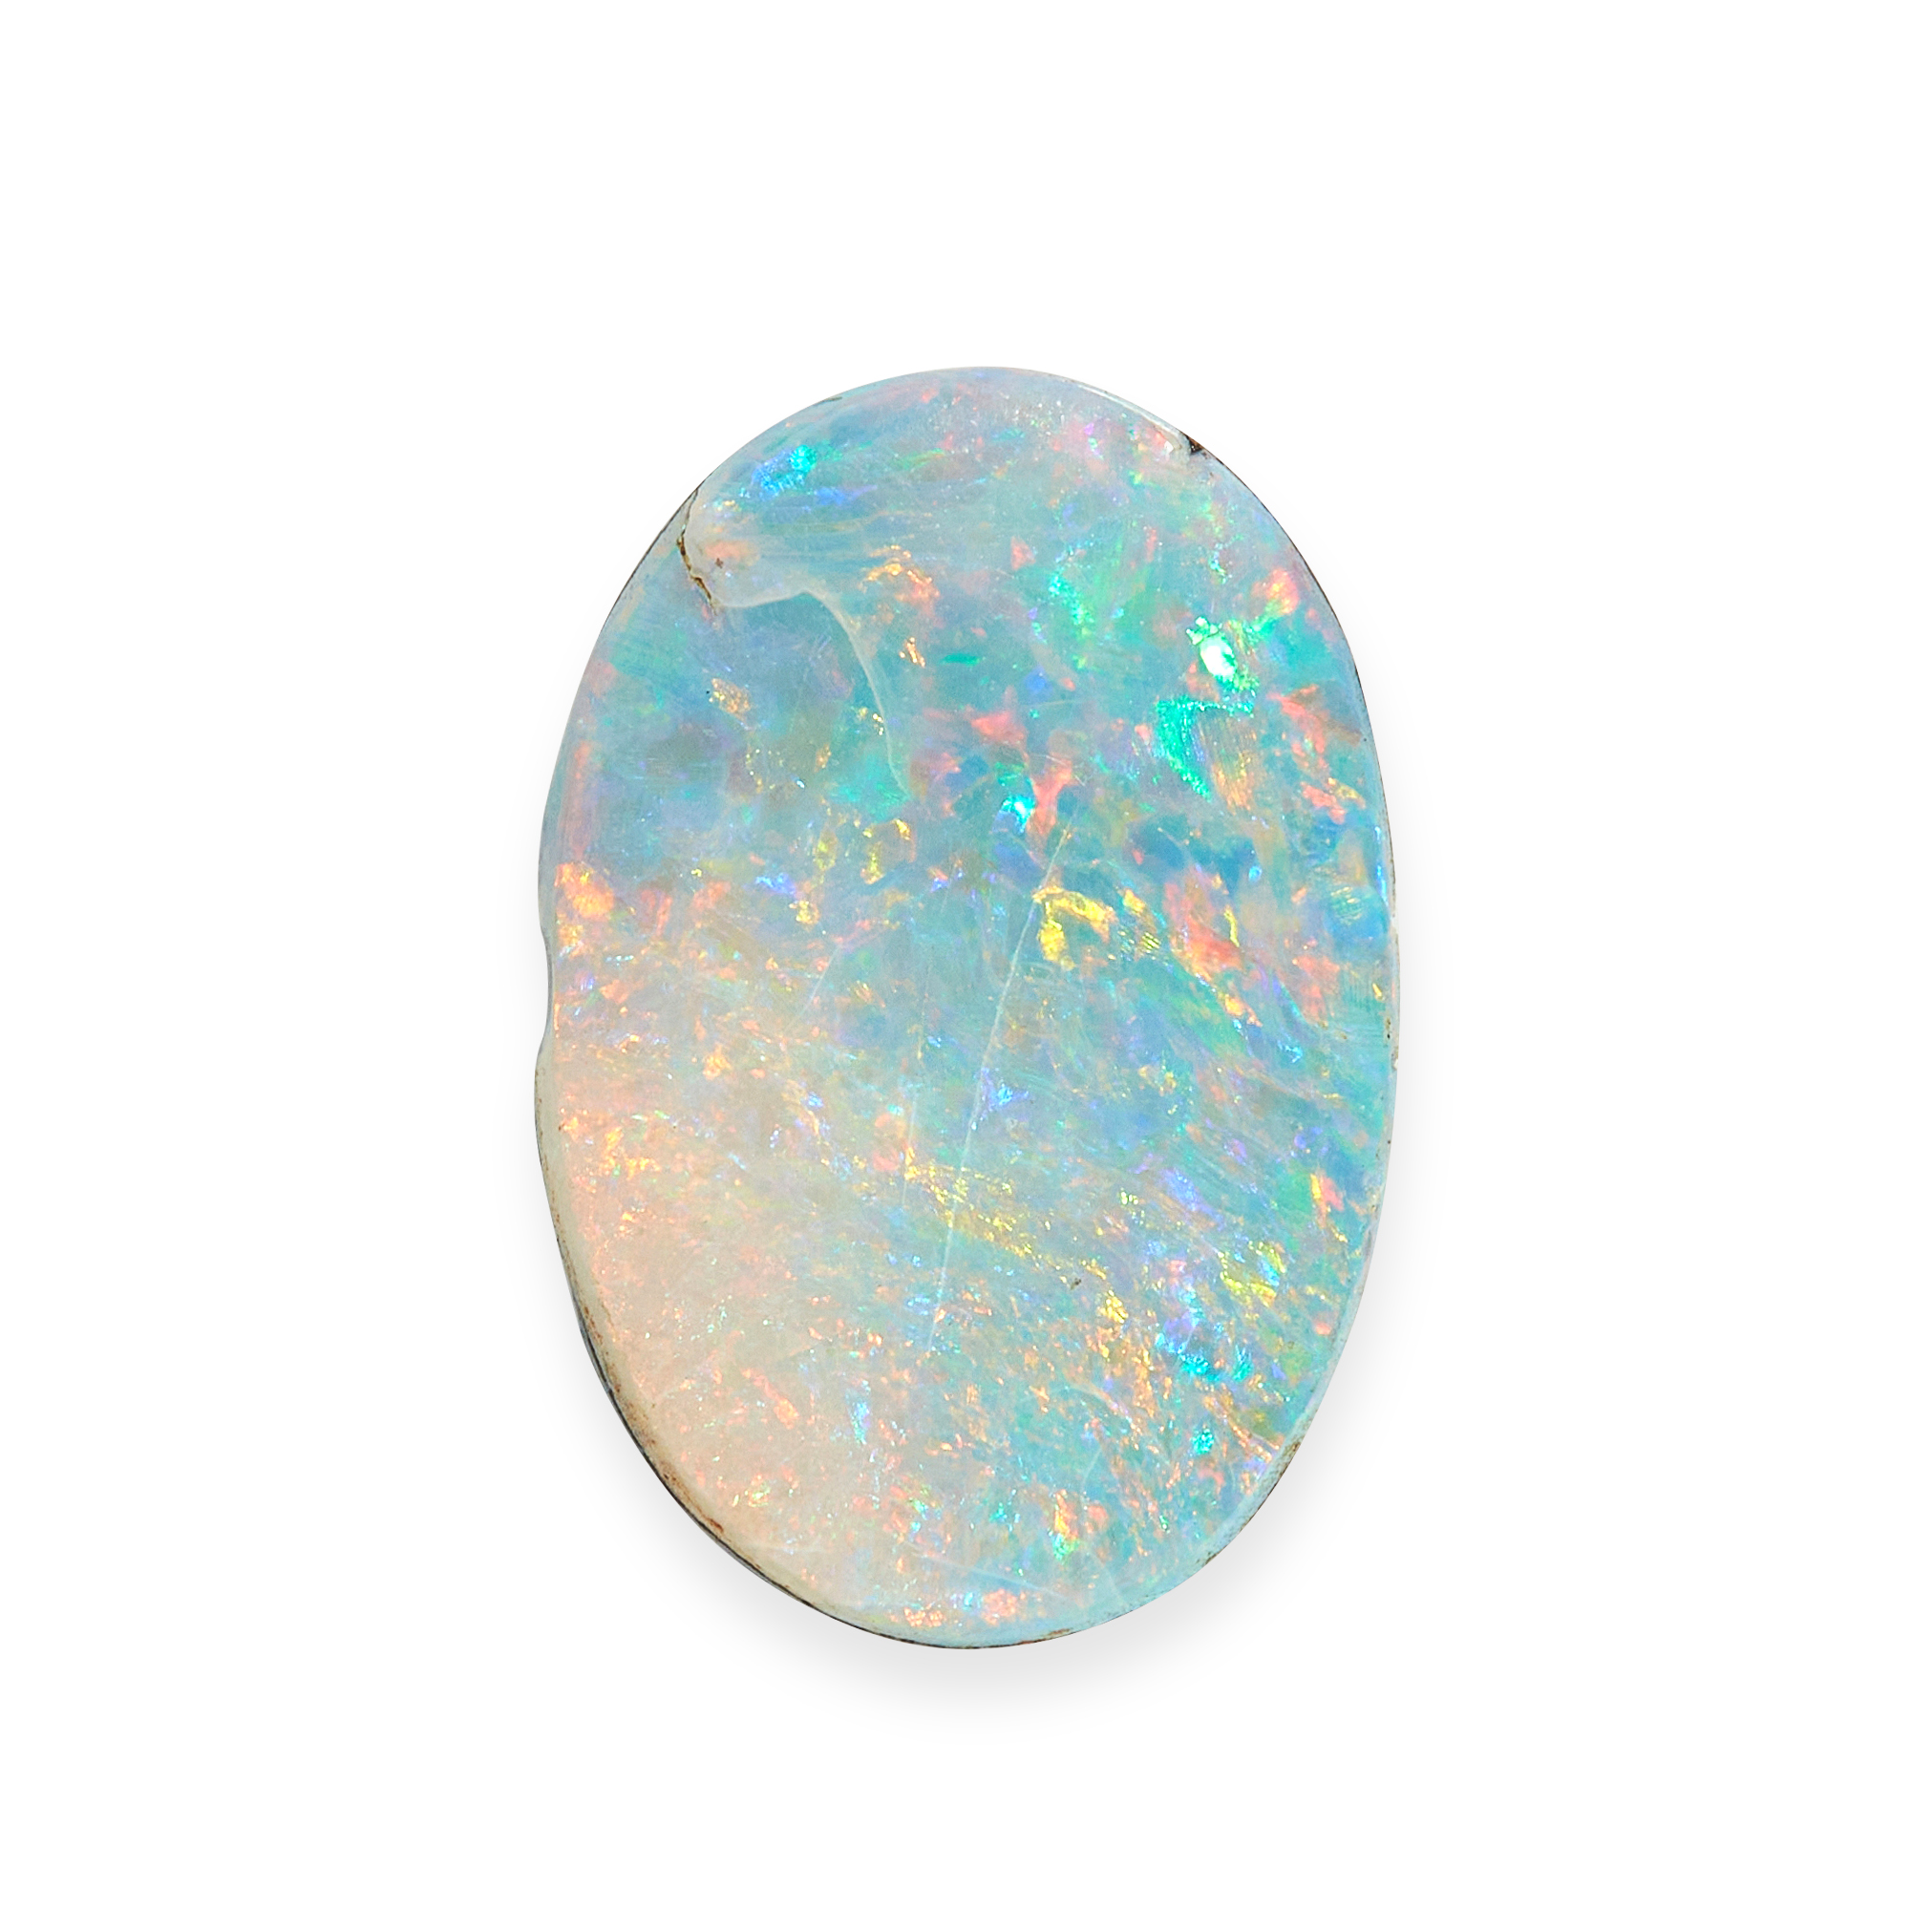 AN UNMOUNTED OPAL oval cabochon, 4.13 carats.